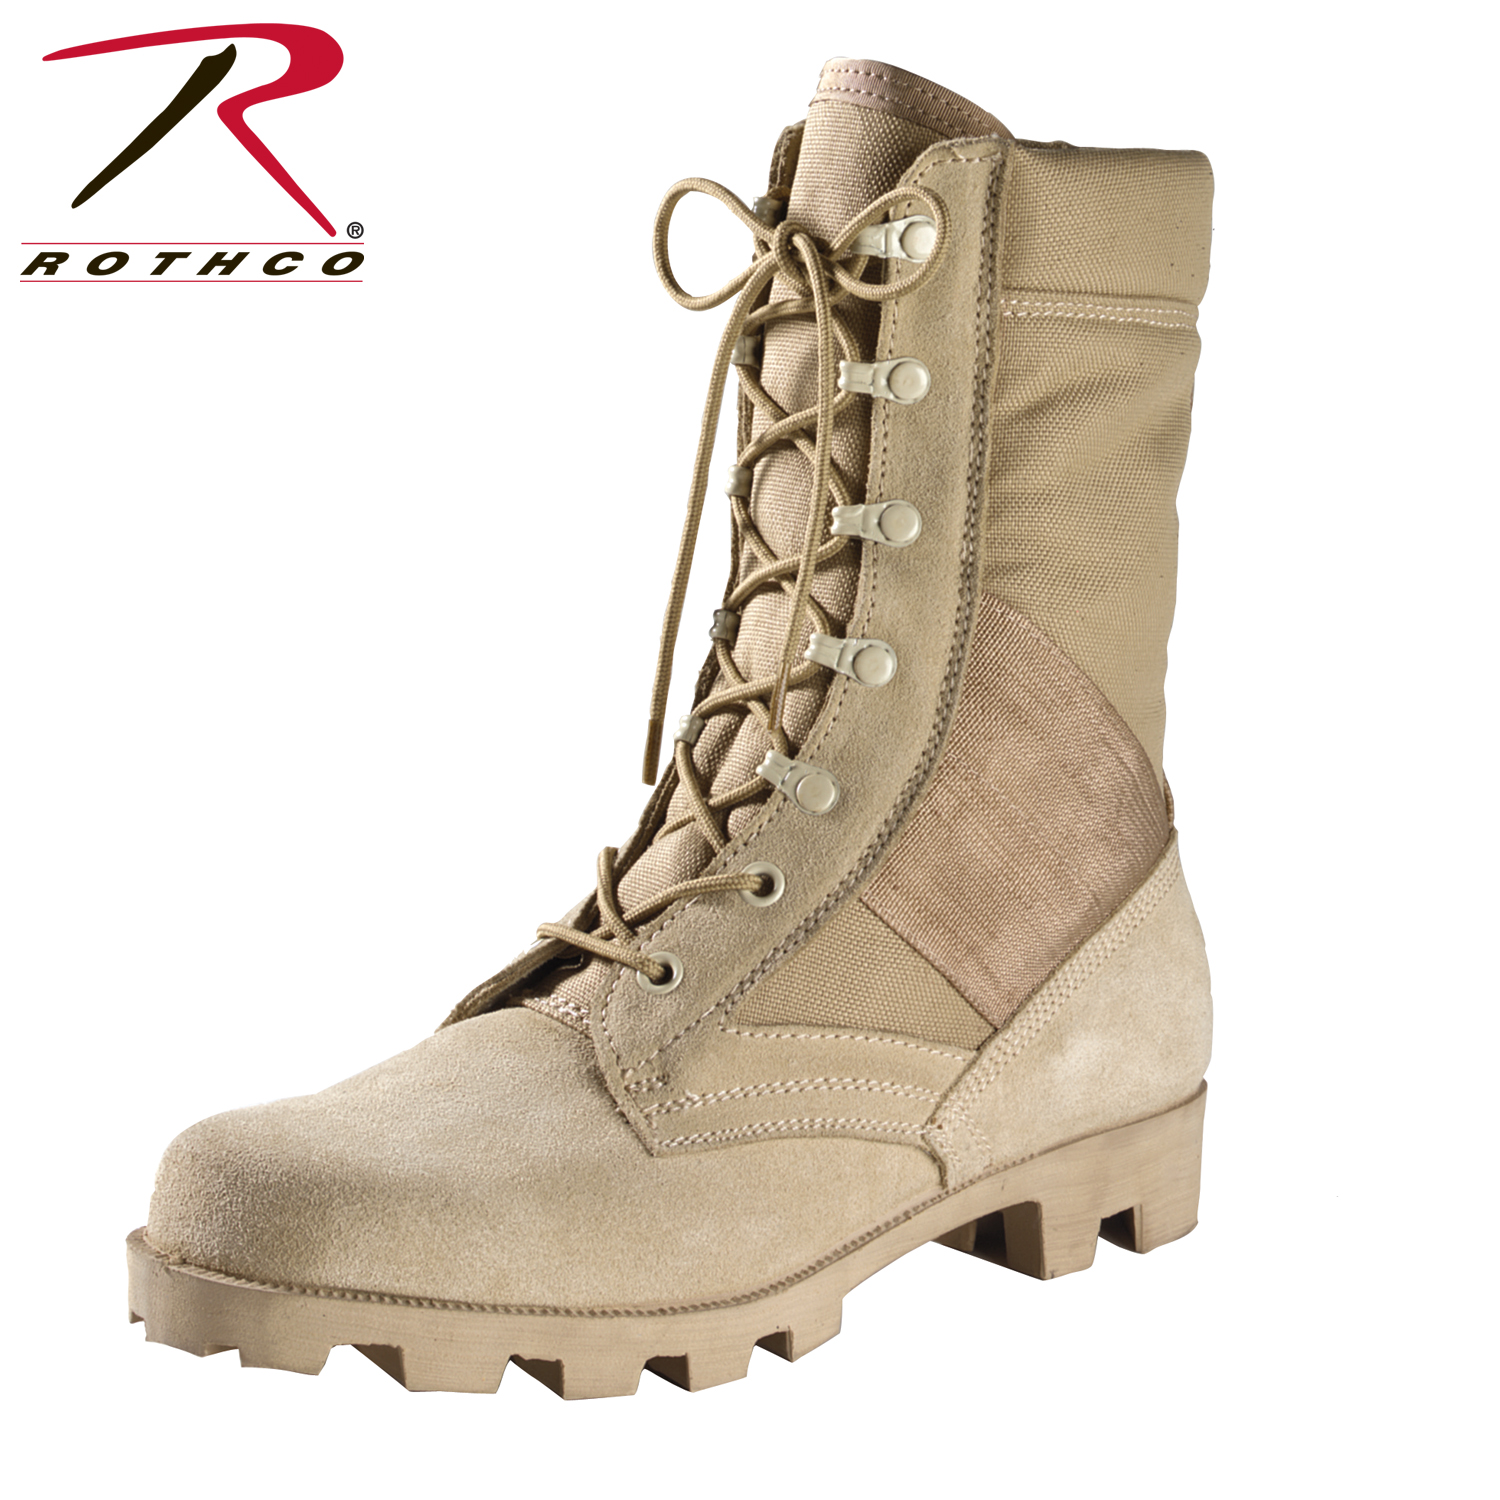 Rothco GI Type Speedlace Desert Tan Jungle Boot